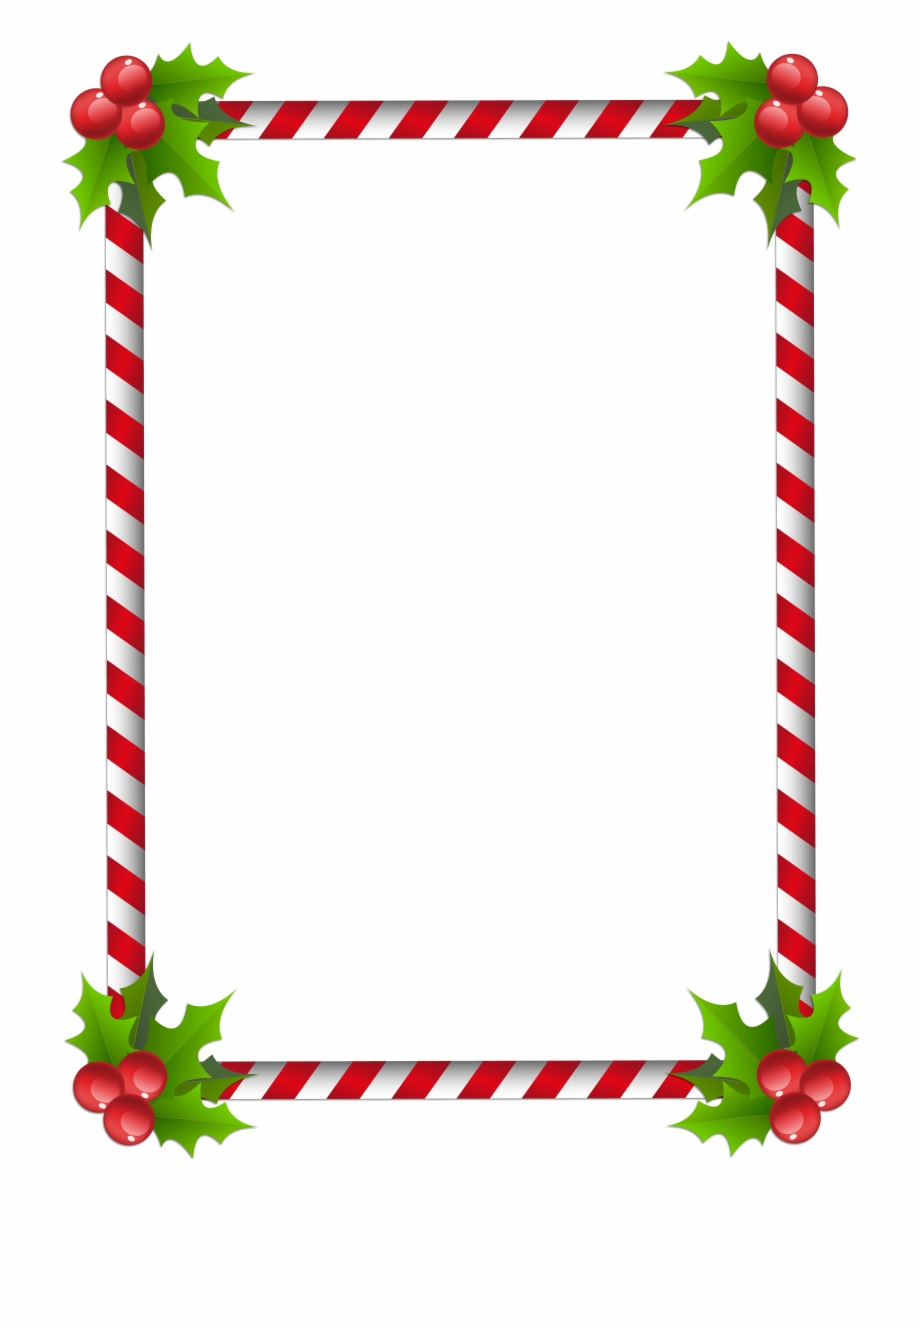 Transparent Background Border Christmas Clipart.